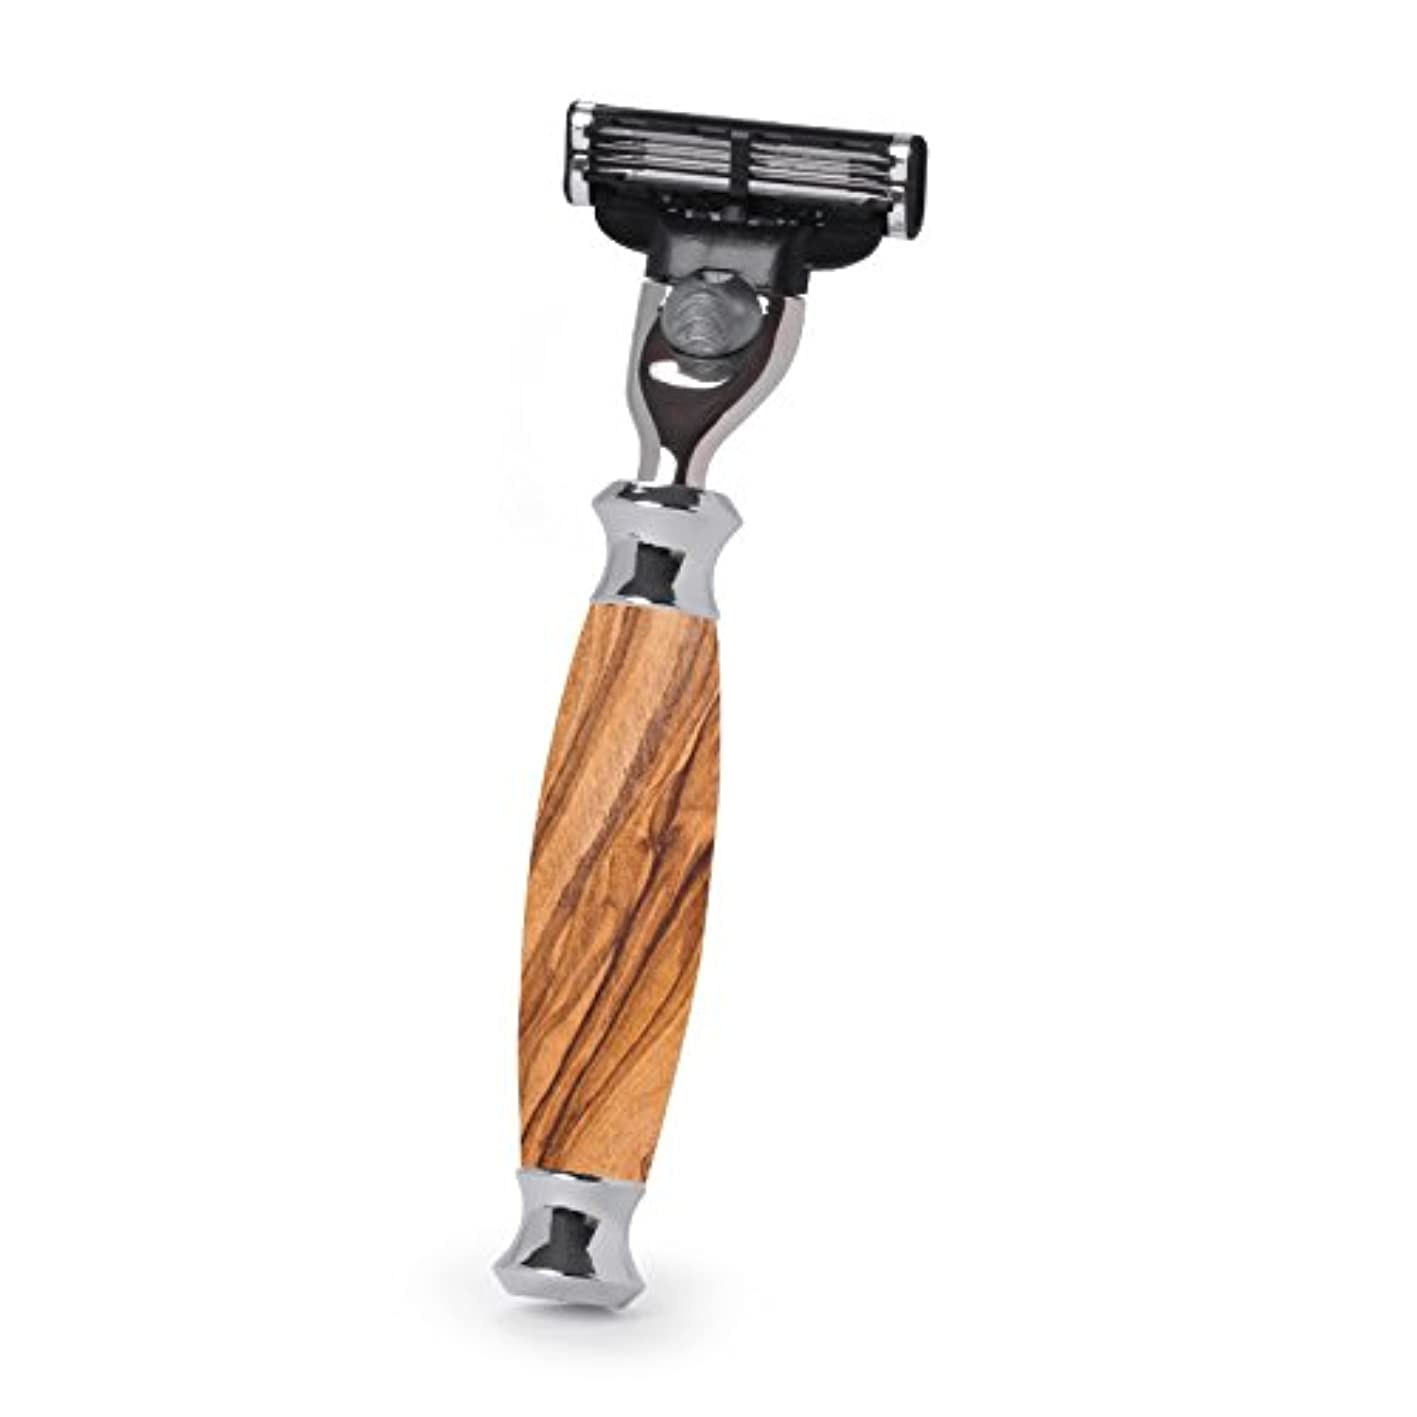 Hans Baier Exclusive - Razor Mach 3, olive wood